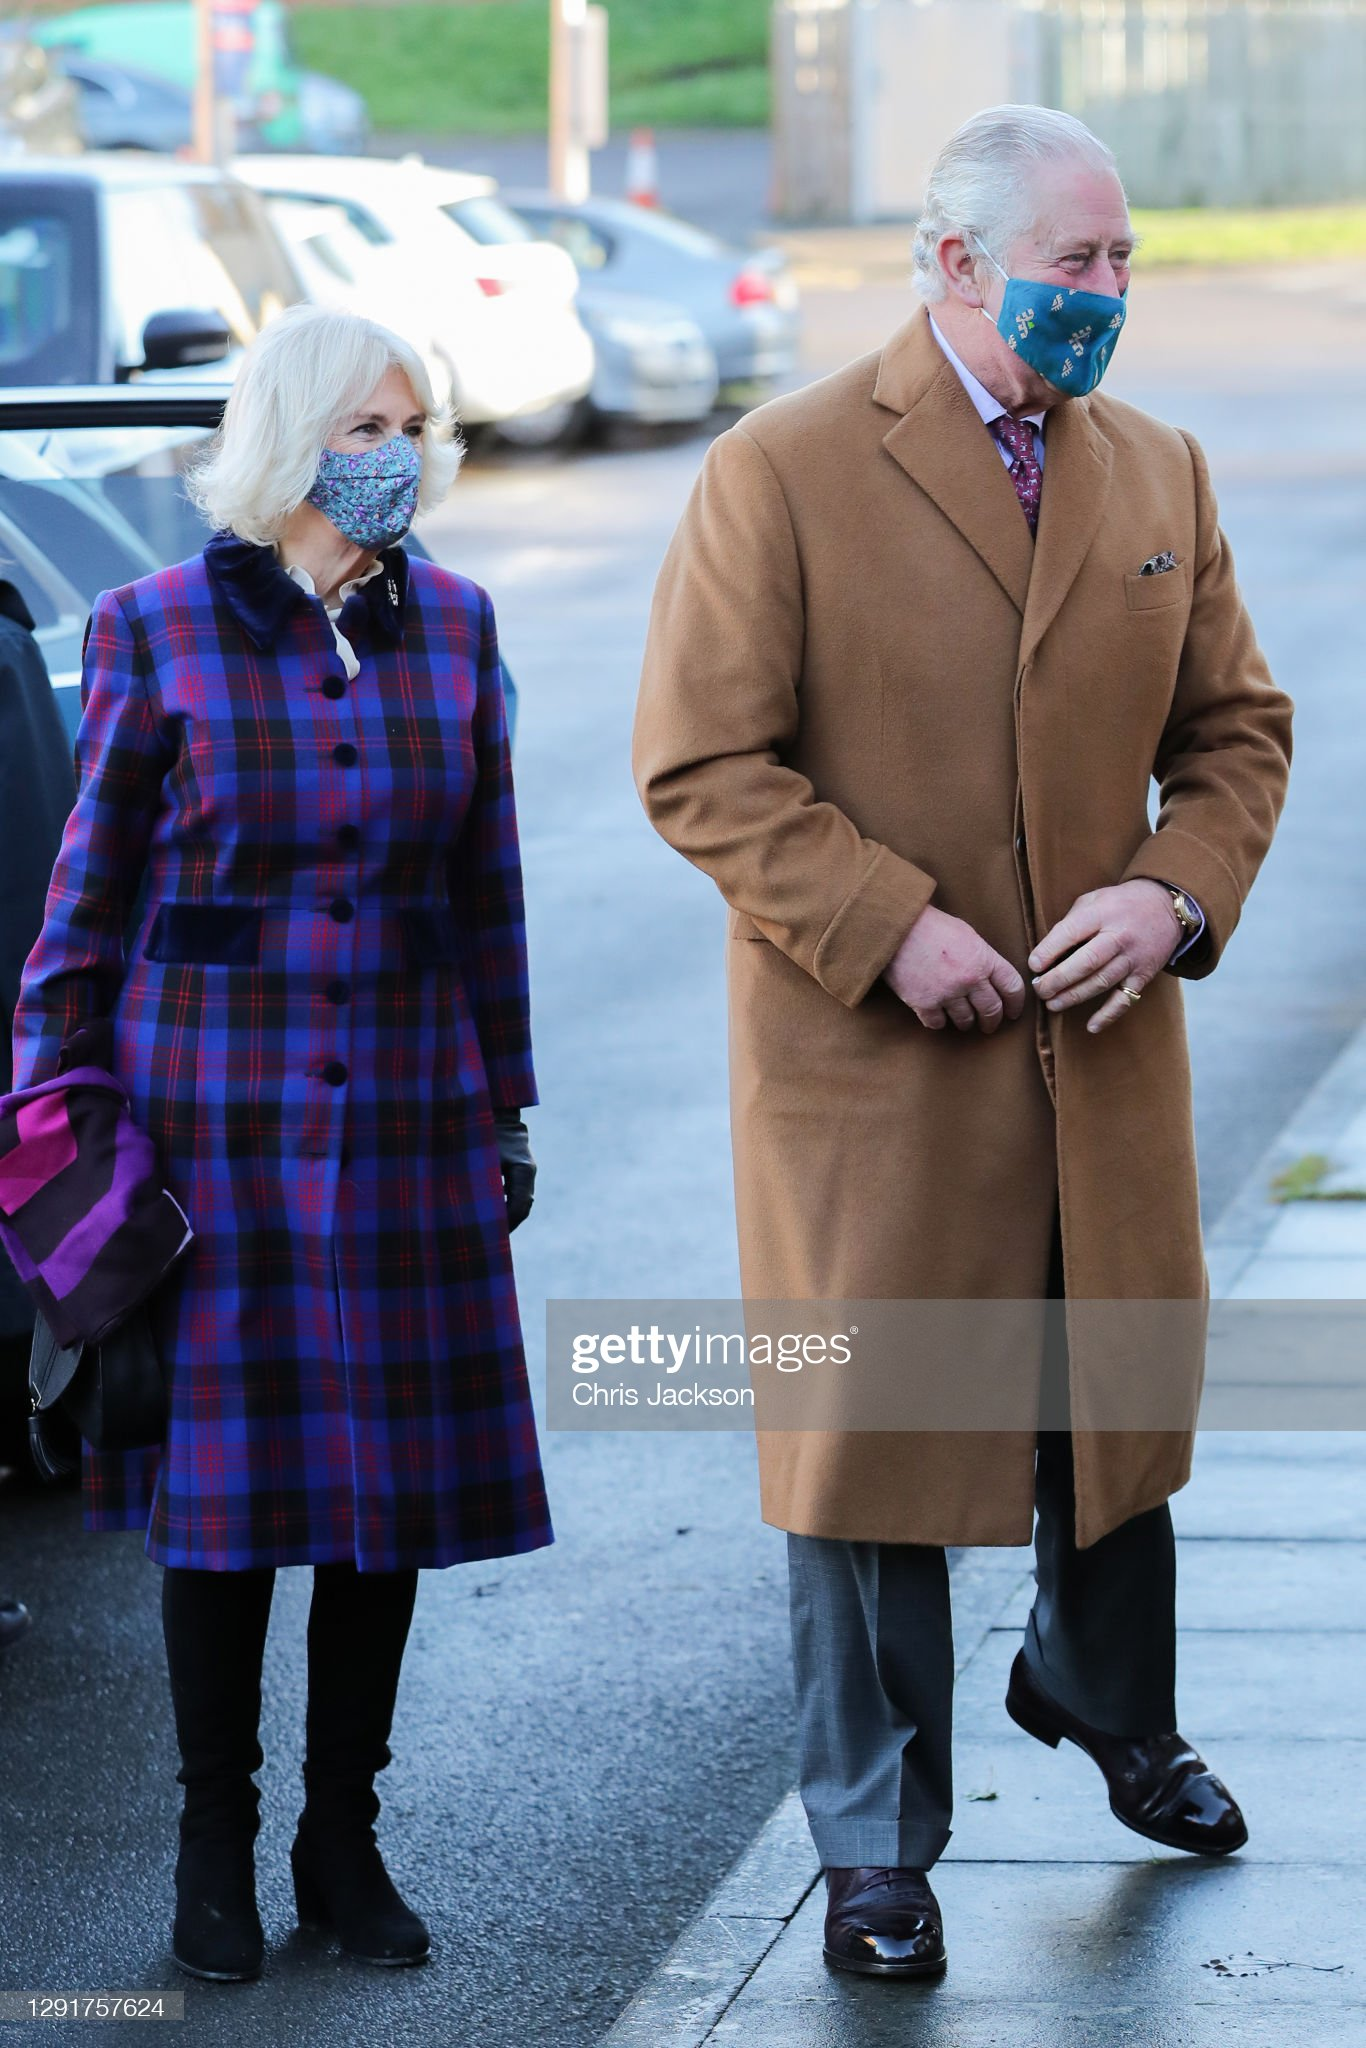 camilla-duchess-of-cornwall-and-prince-charles-prince-of-wales-arrive-picture-id1291757624